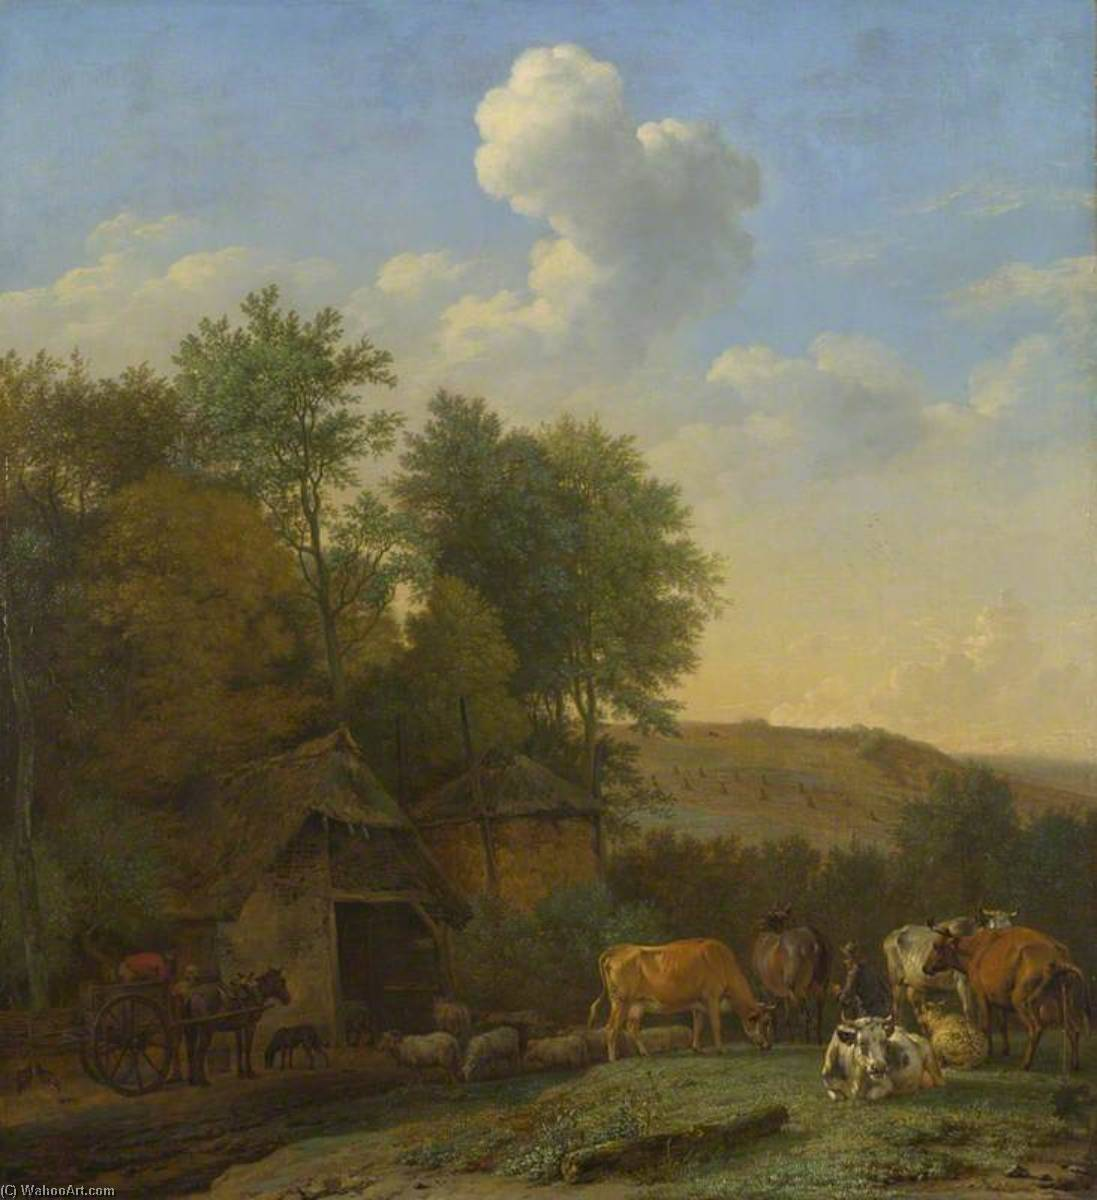 A Landscape with Cows, Sheep and Horses by a Barn, Oil by Paulus Potter (1625-1654, Netherlands)